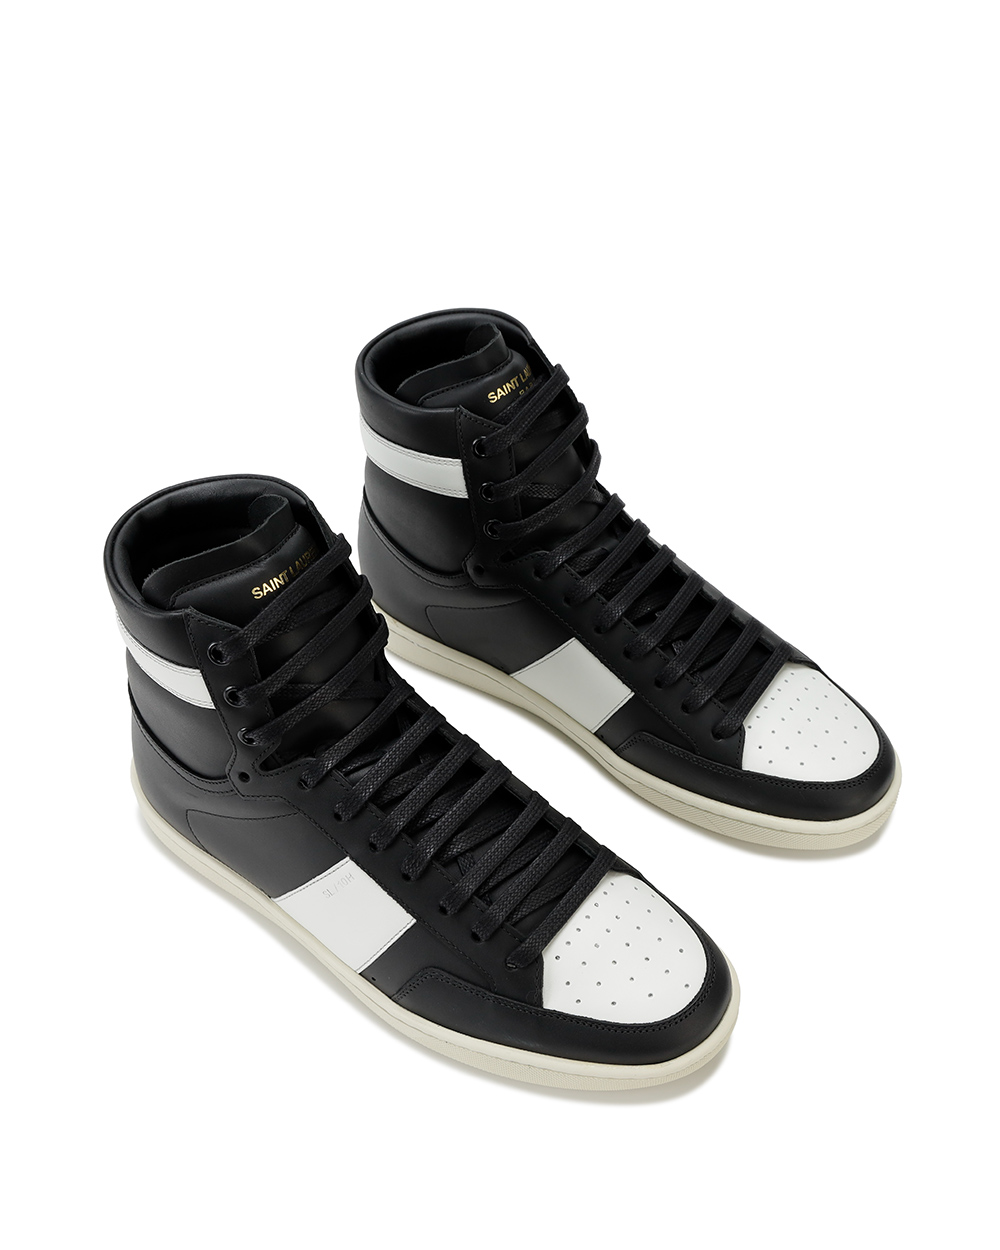 Signature Court Classic SL/10H High Top Sneakers 1